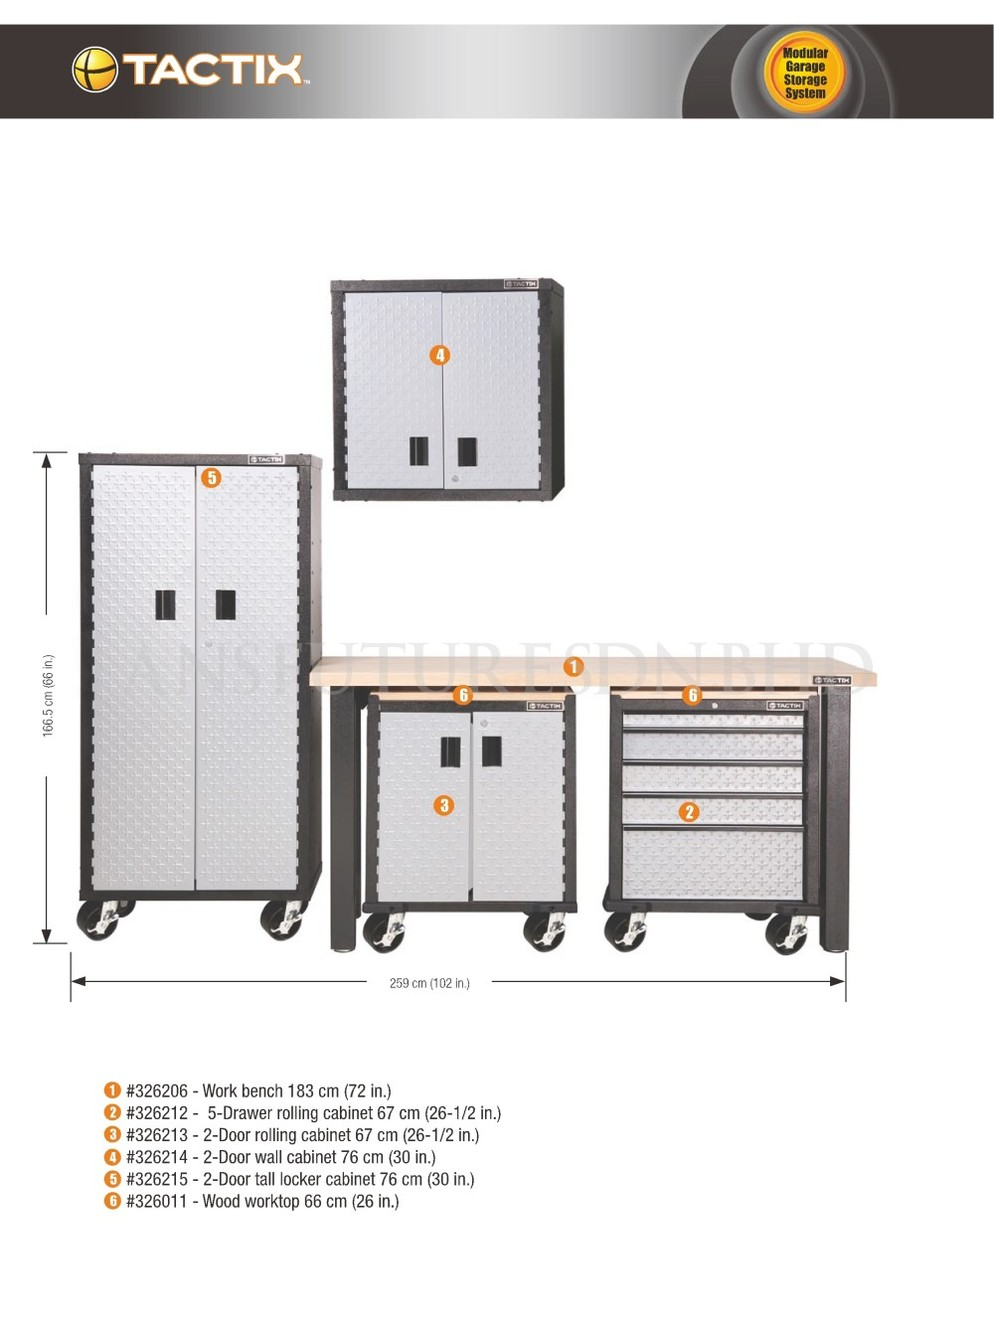 Galleries Ans Future Sdn Bhd Open Slot Wiring Duct Storage Systems